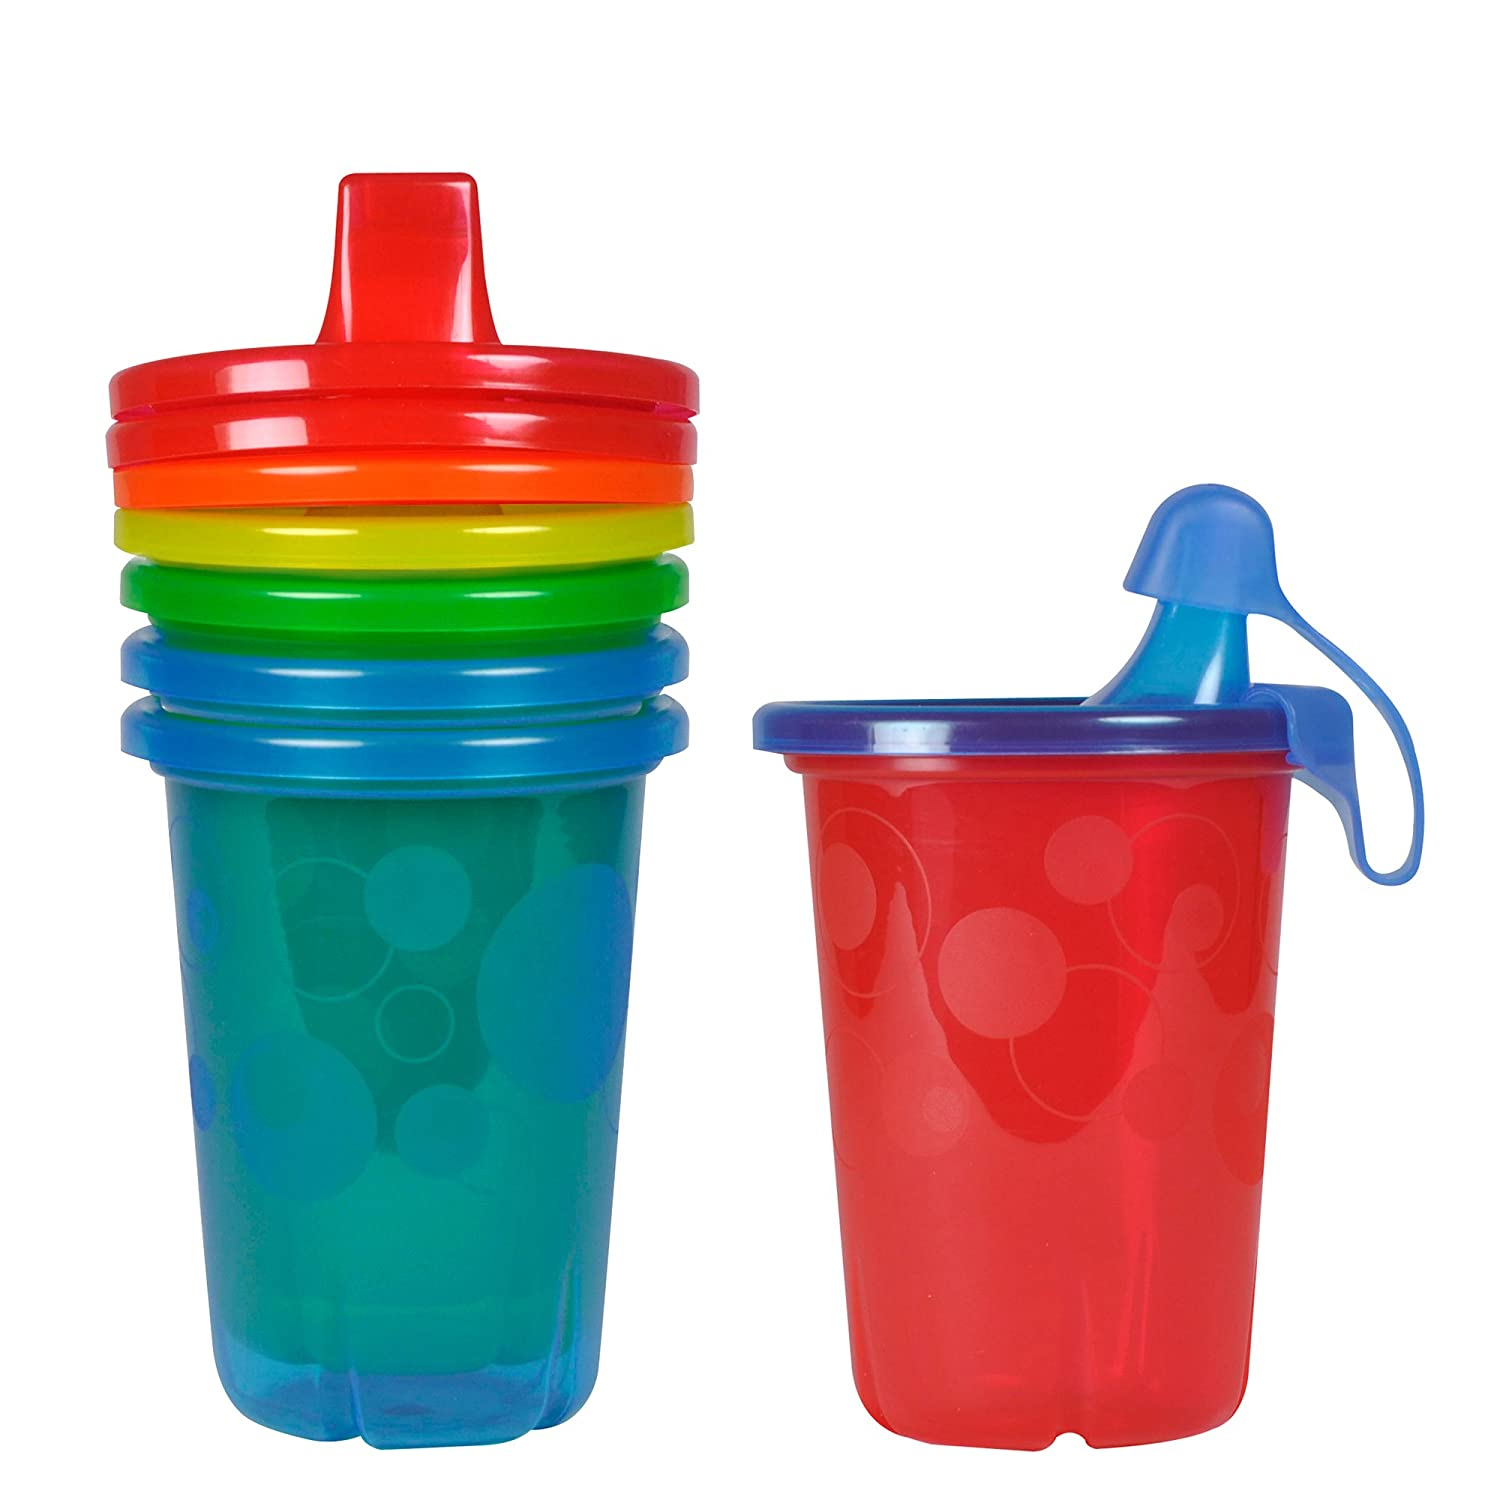 The First Years Y1176 10-Ounce Take And Toss Spill Proof Cups, Colors May Vary, 4-Pack Y1176MP